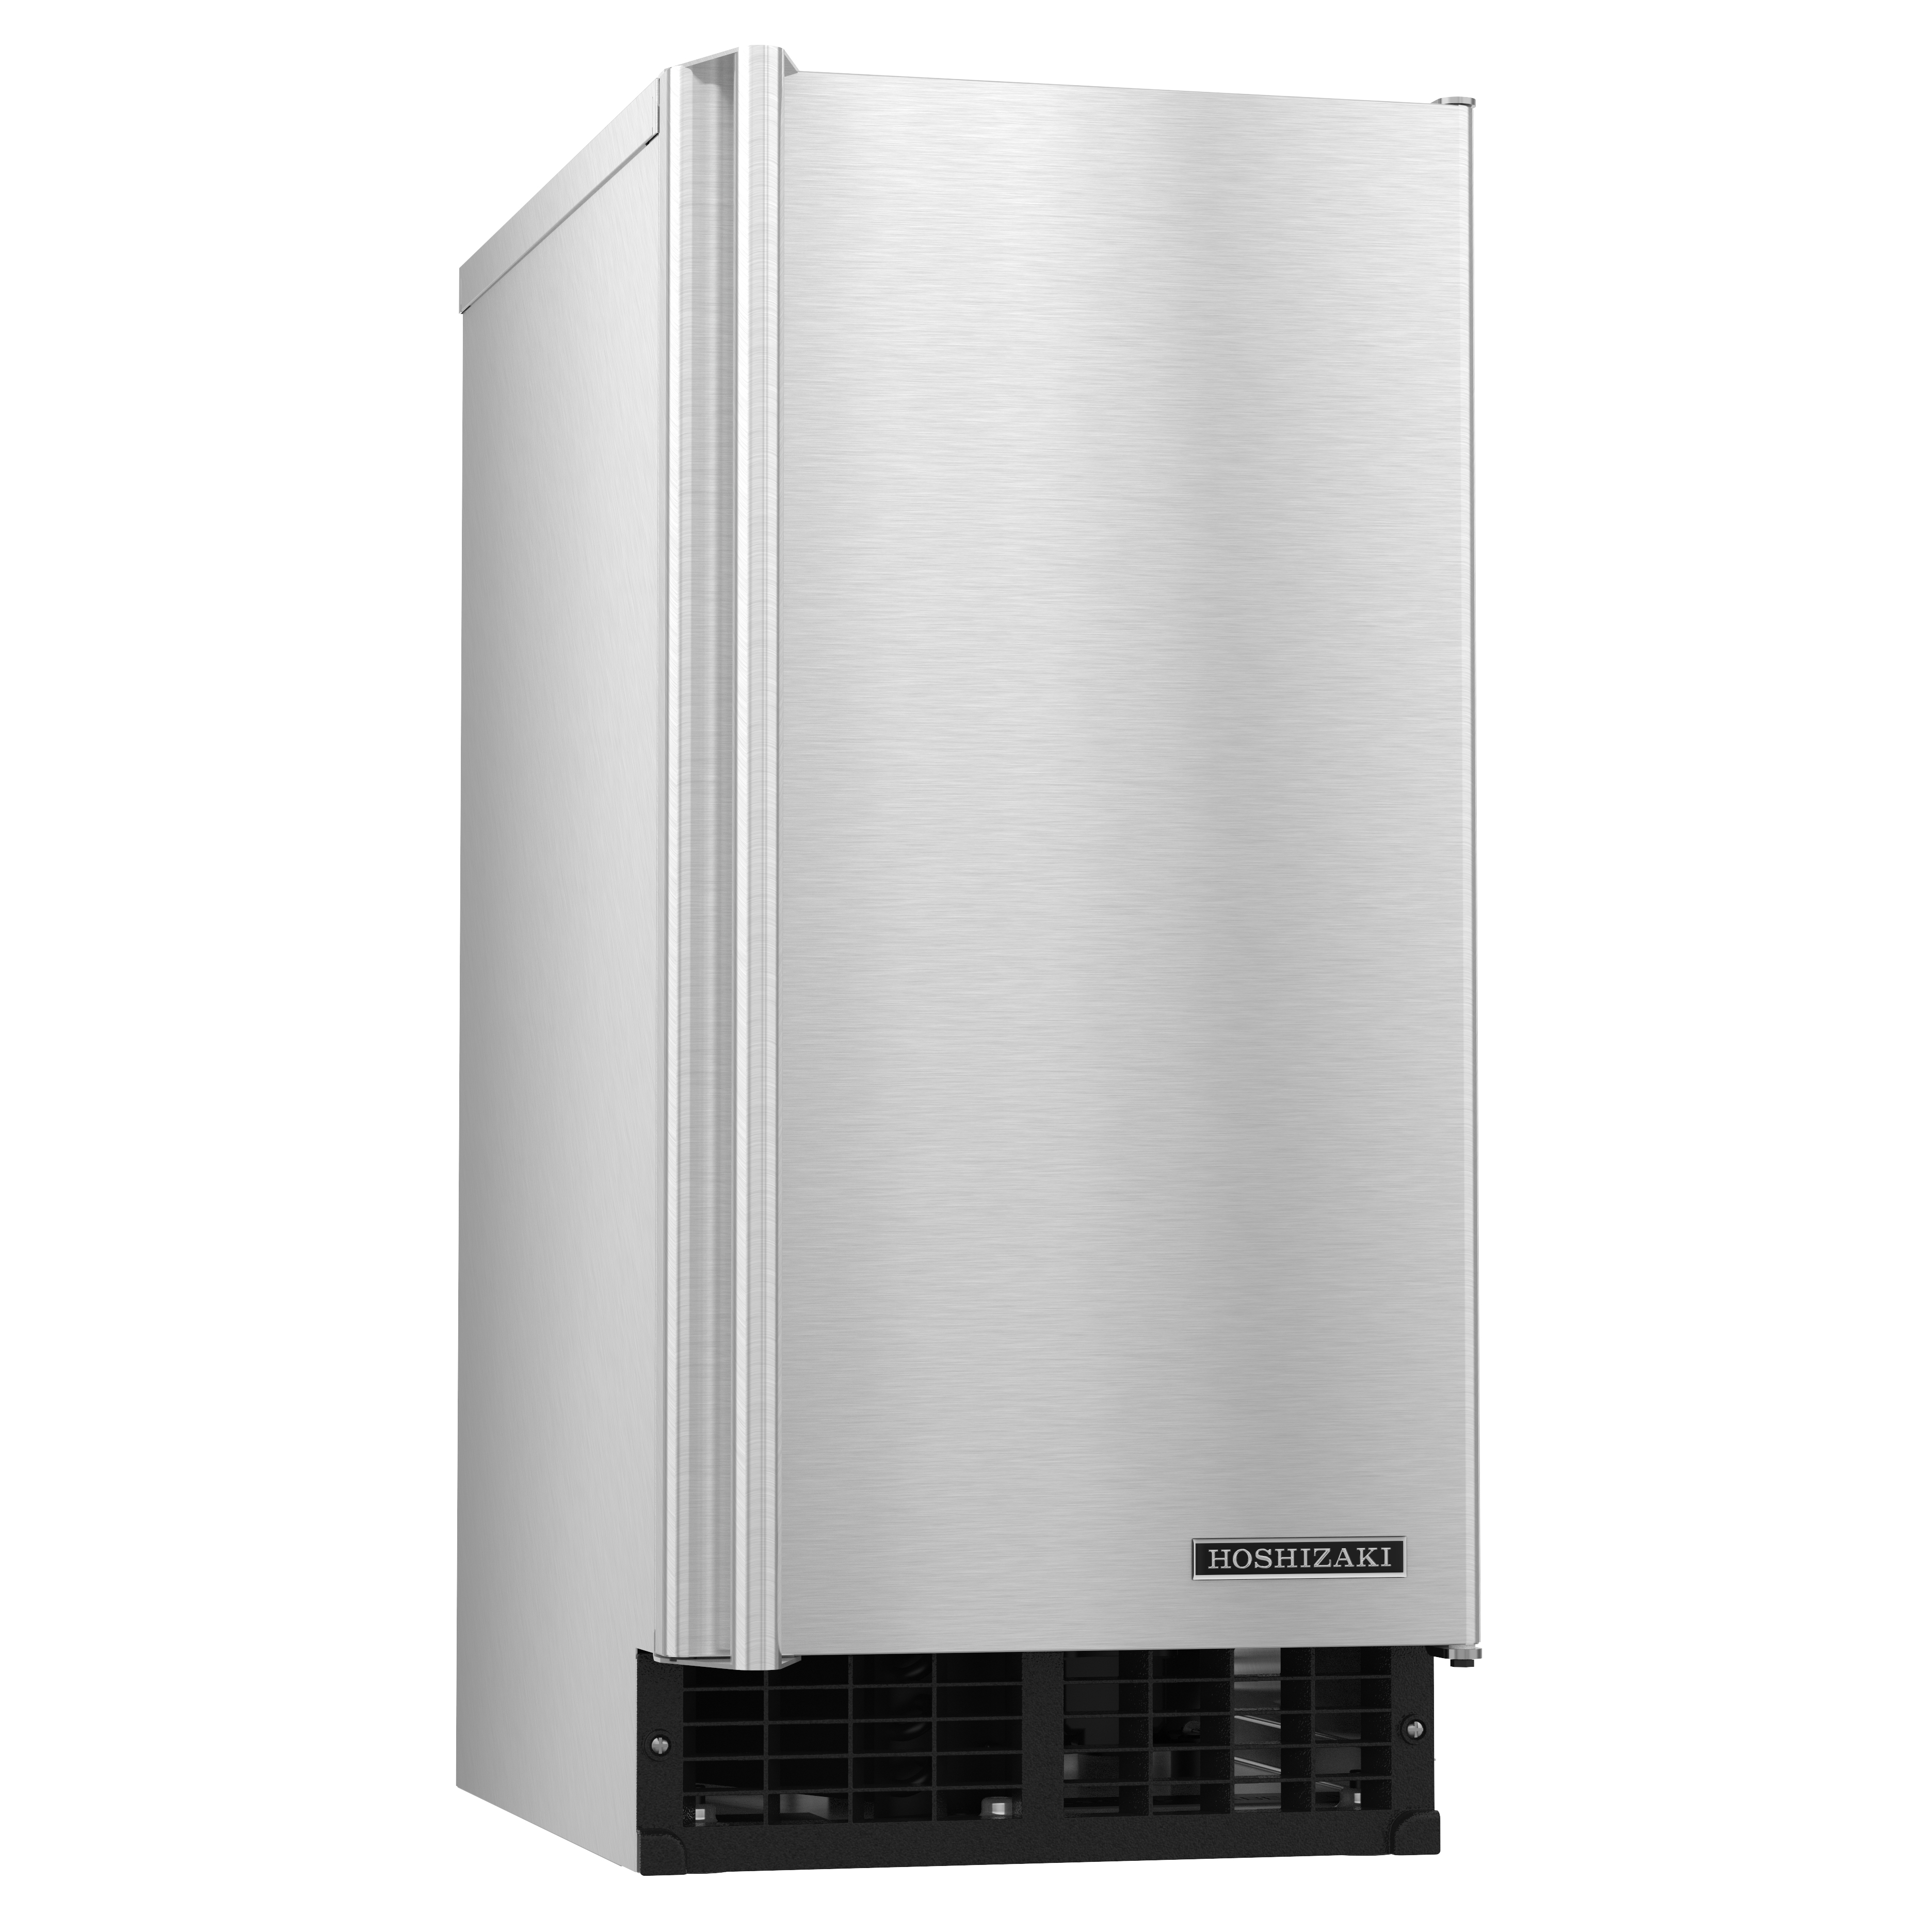 Hoshizaki AM-50BAJ-AD ice maker with bin, cube-style